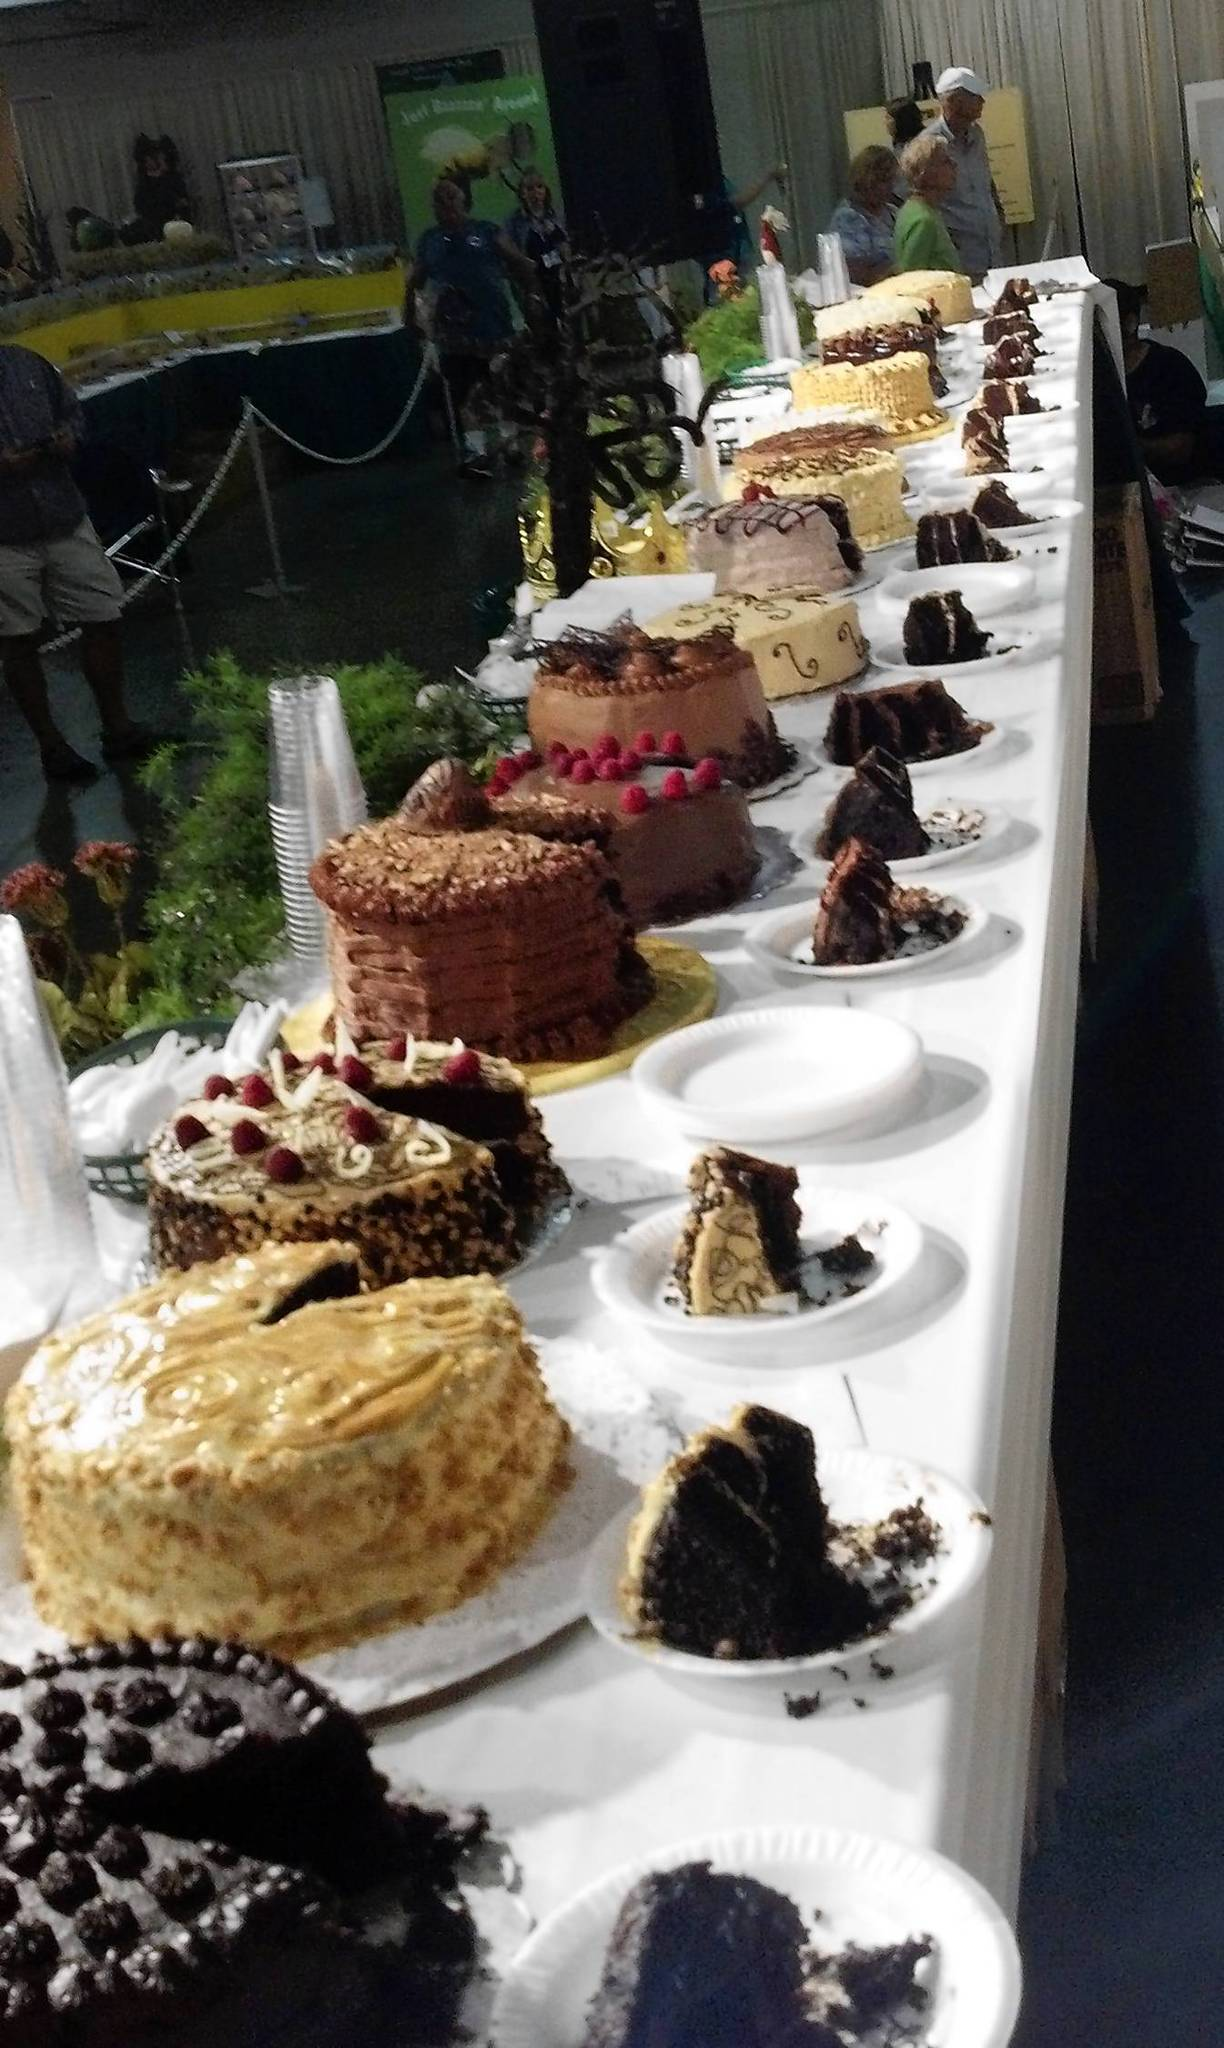 The Allentown Fairs Pennsylvania Preferred Chocolate Cake contest Tuesday night featured 20 cakes.